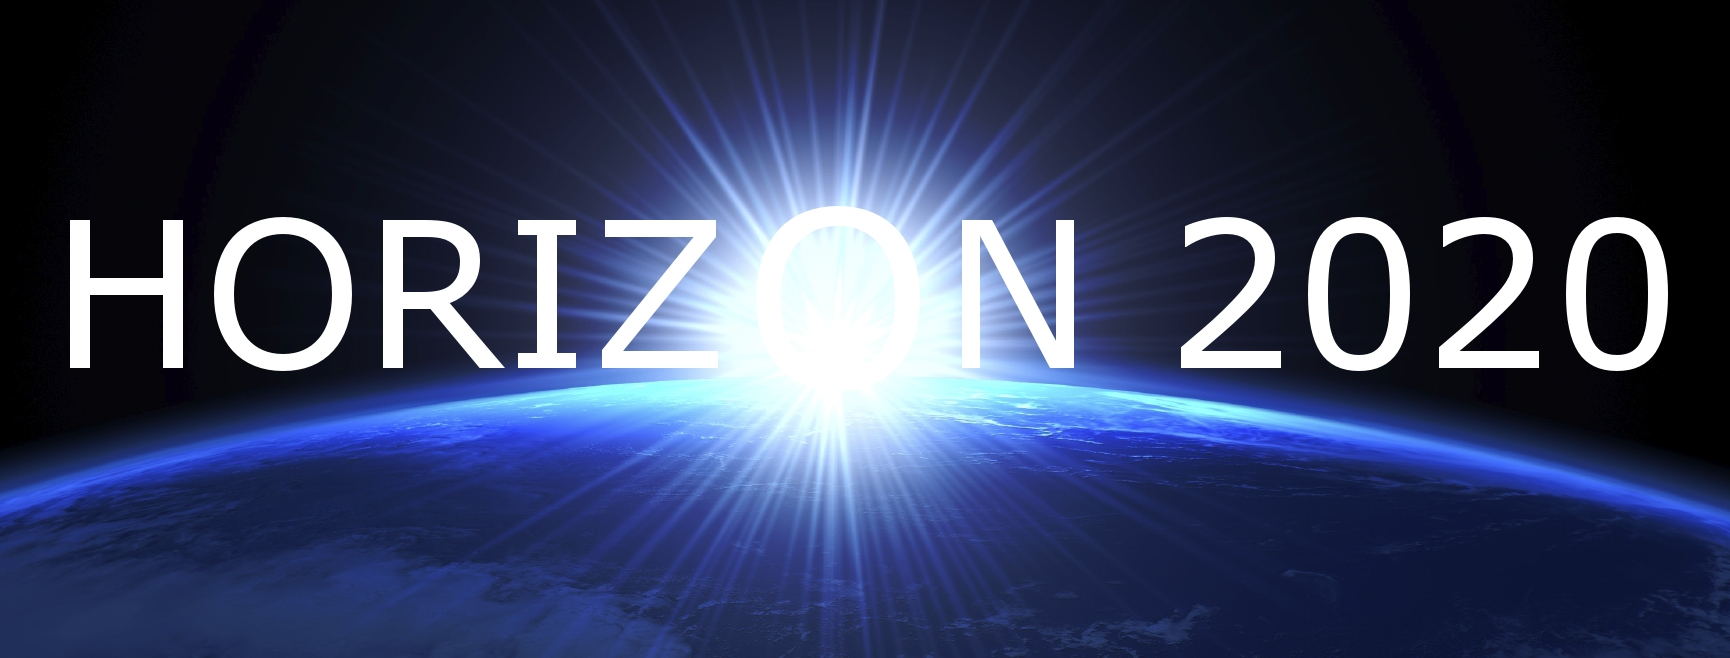 1 Point Safety >> Horizon 2020 | Research and Innovation | RVO.nl